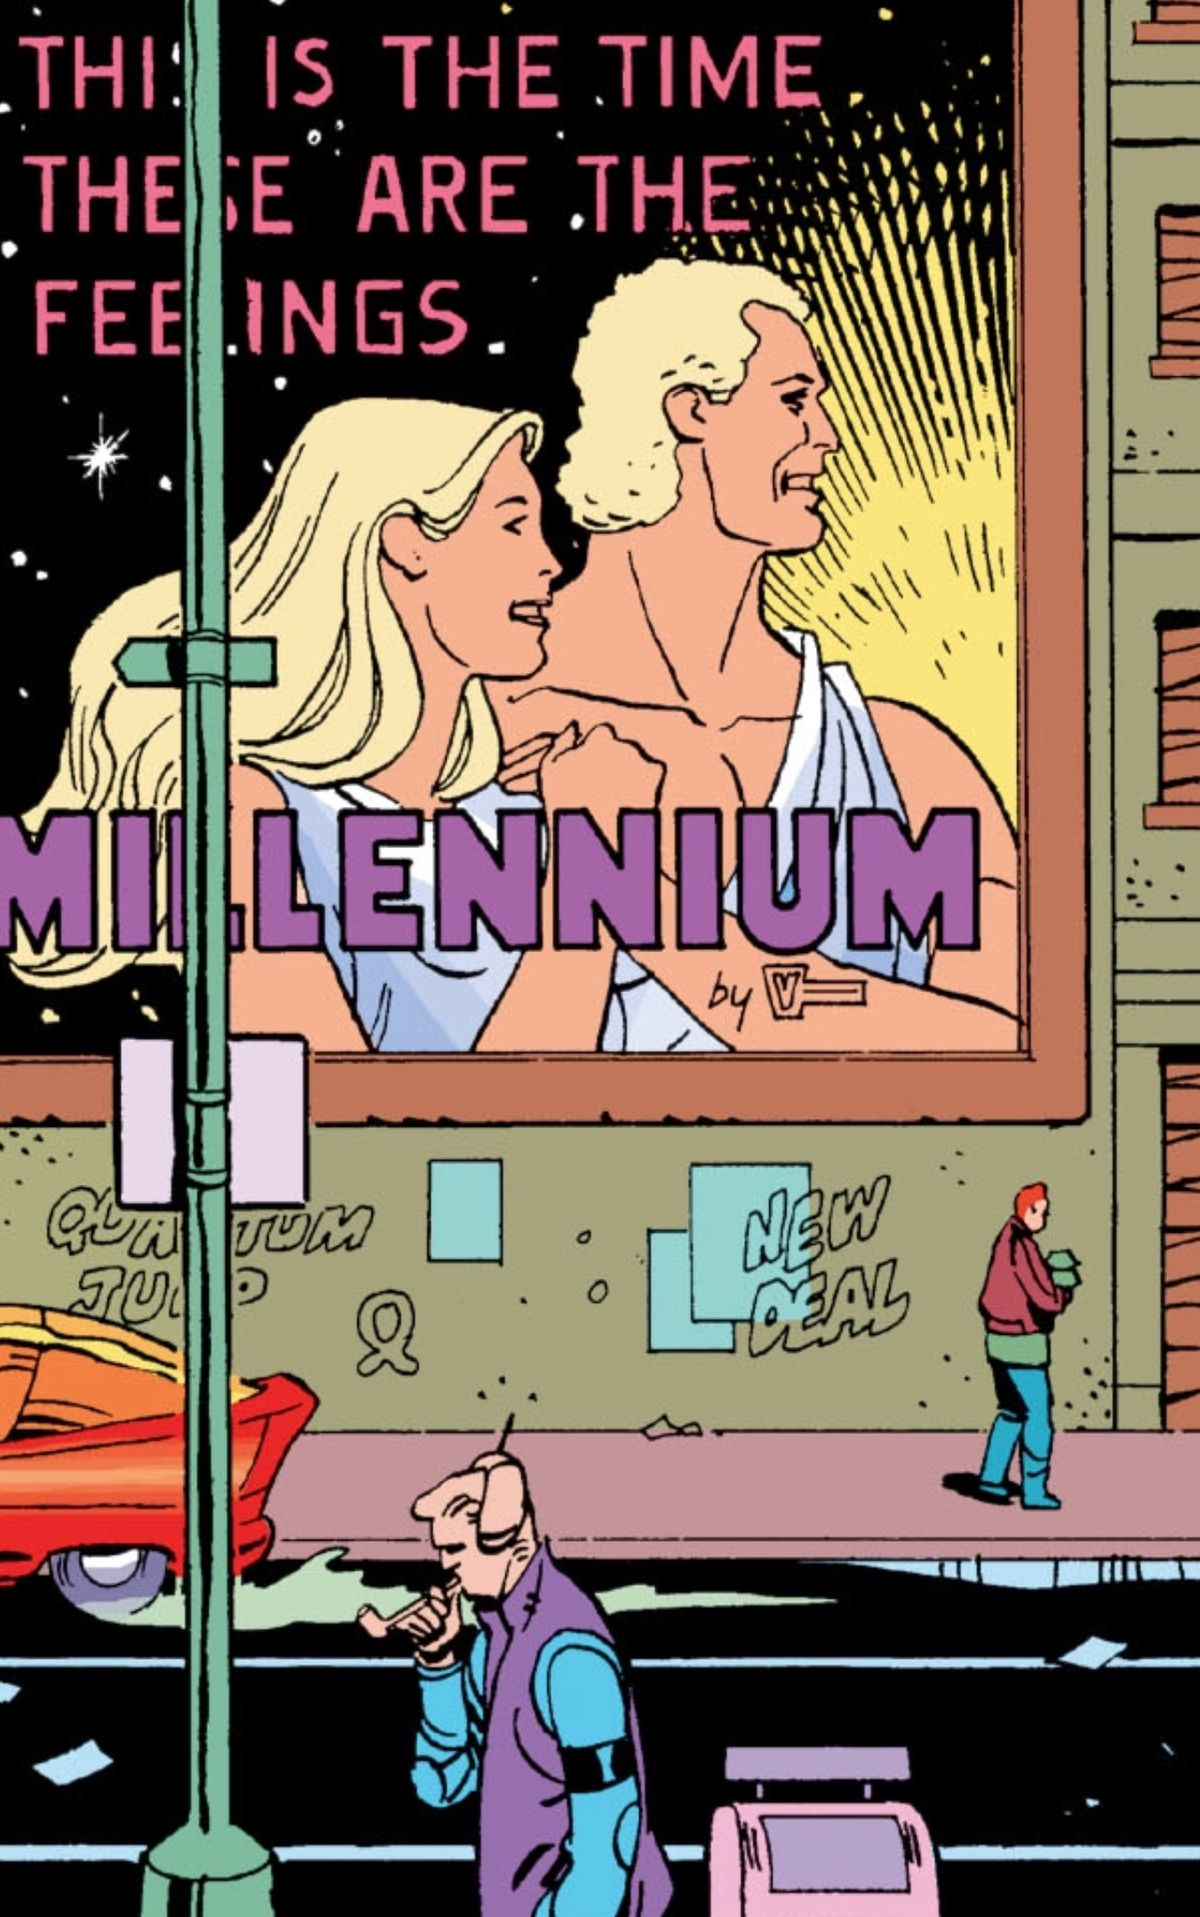 """A giant billboard shows a blond man and women in toga-like raiments facing a growing light and smiling. """"This is the time. These are the feelings. Millennium by Veidt,"""" it says. From Watchmen, DC Comics (1987)."""